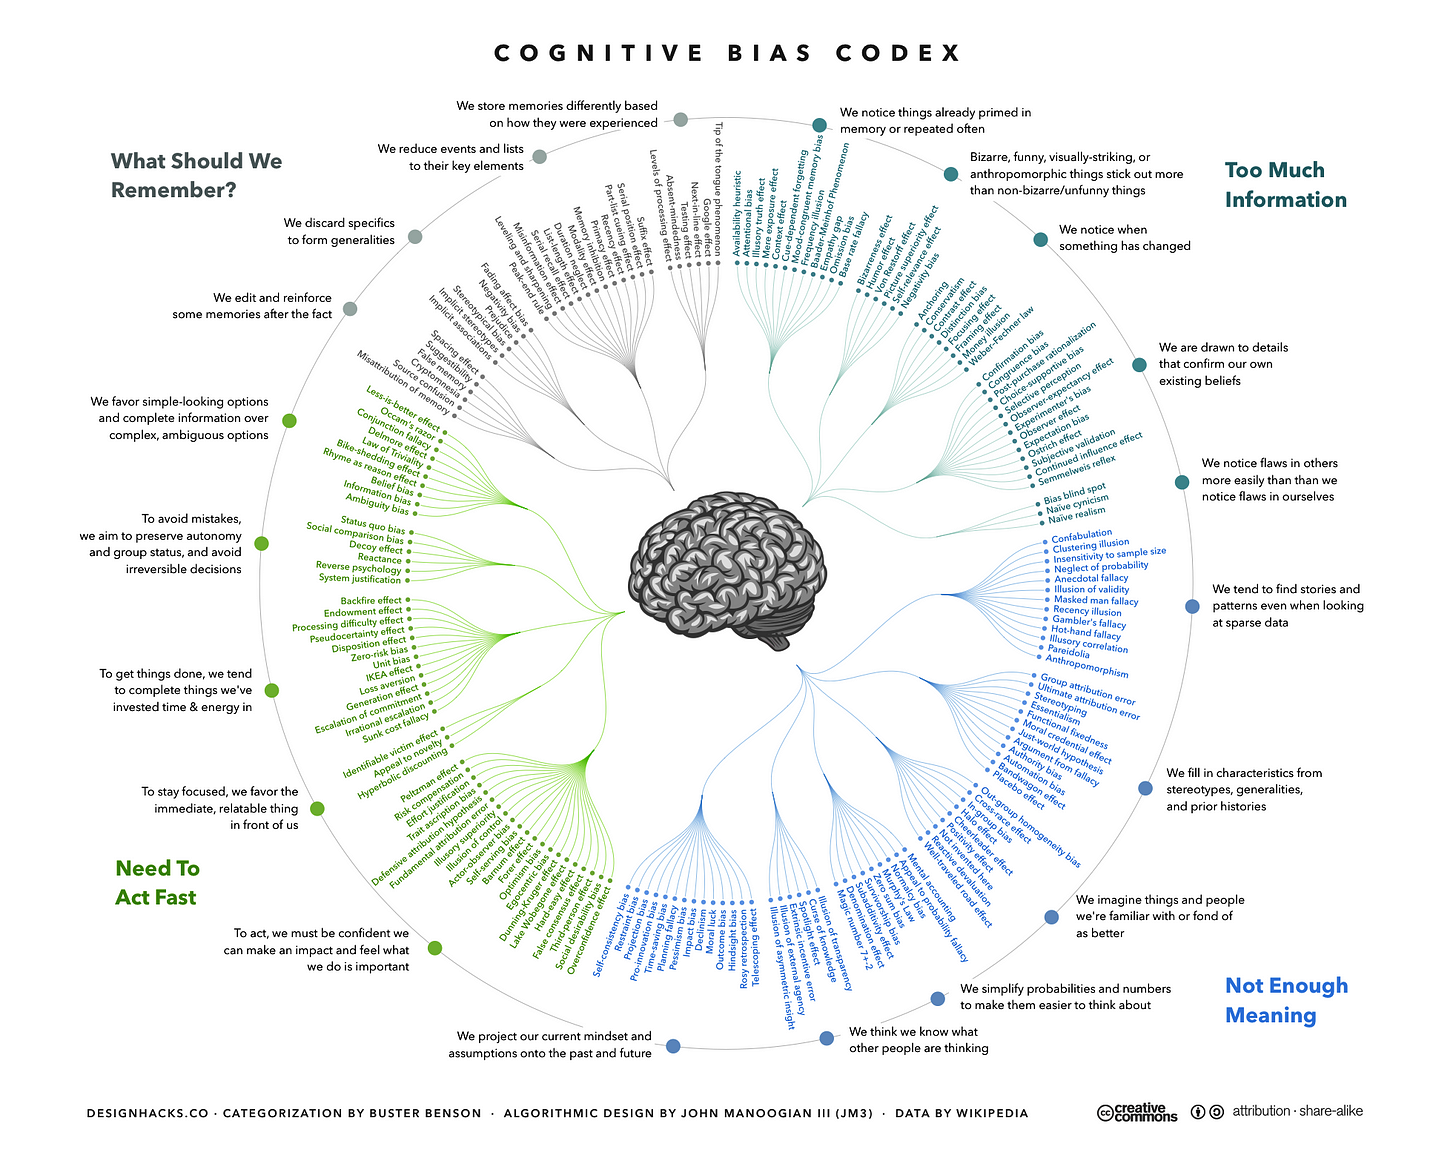 Fichier:The Cognitive Bias Codex - 180+ biases, designed by John Manoogian  III (jm3).png — Wikipédia